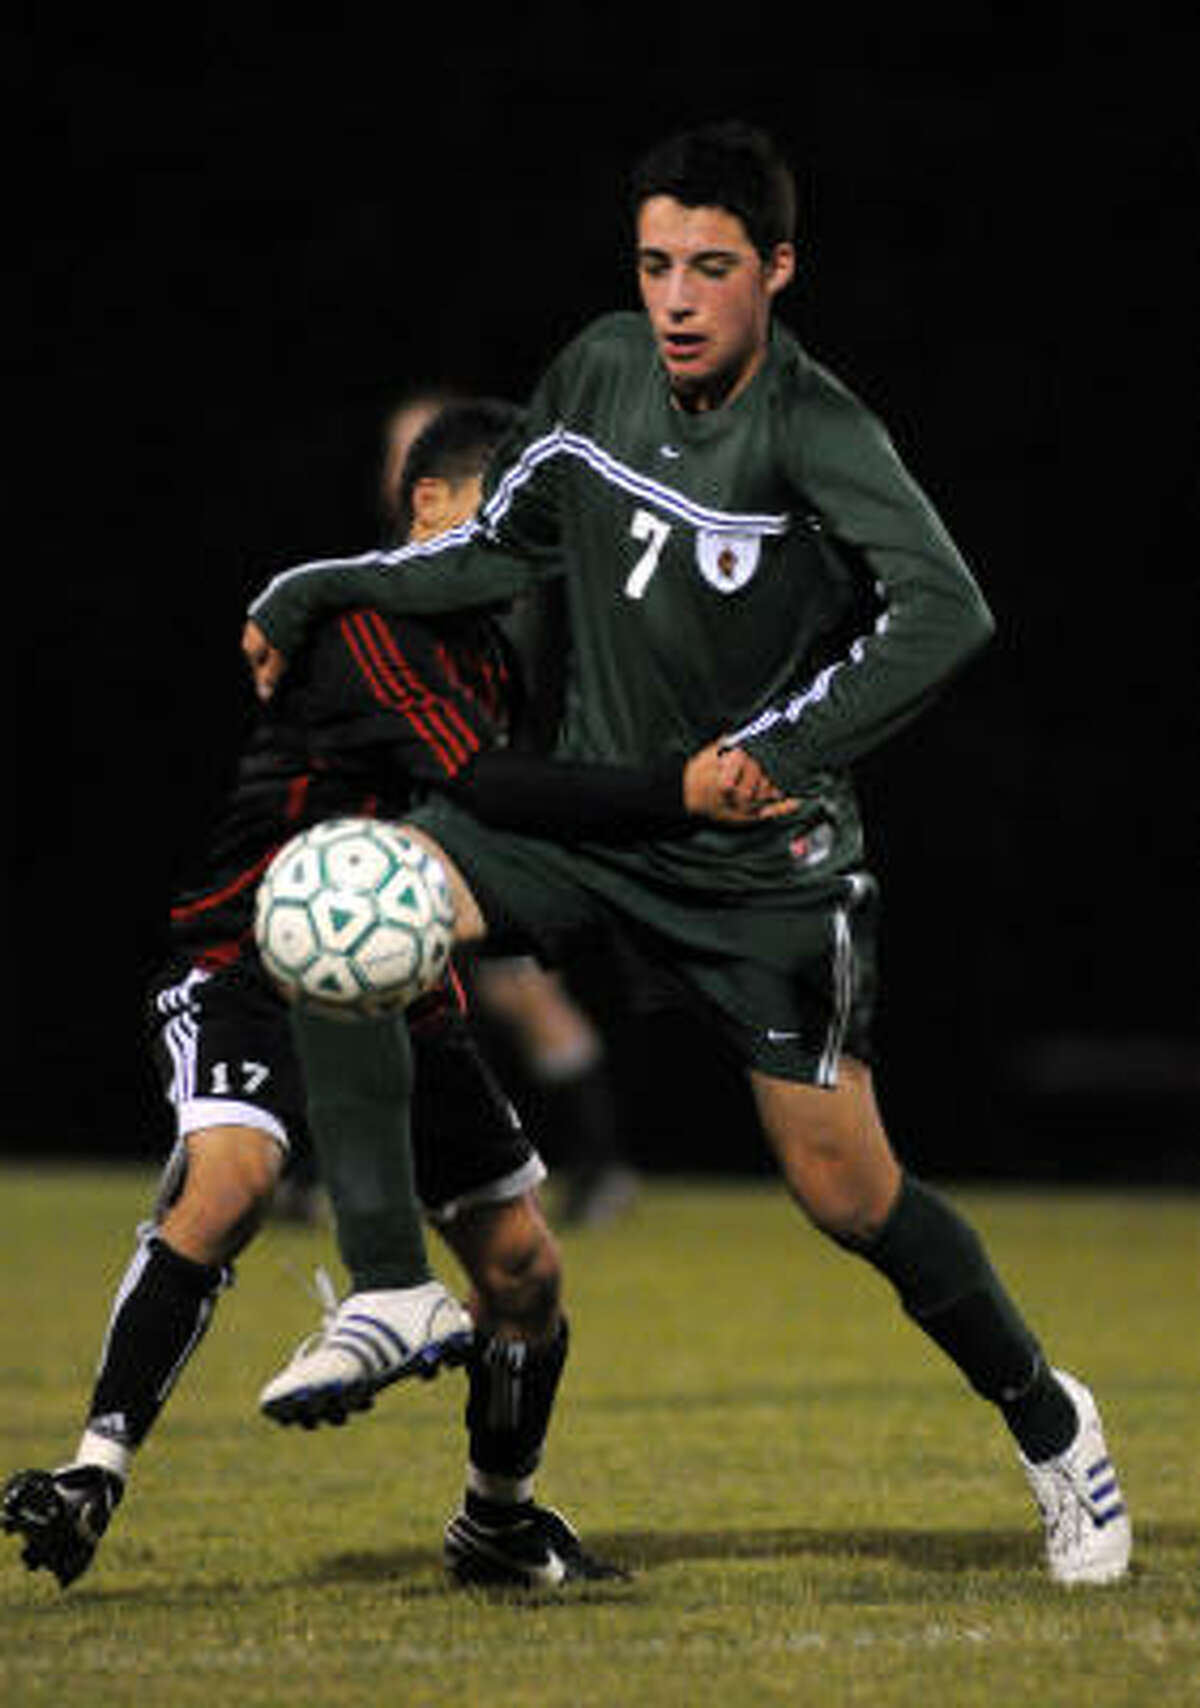 The Woodlands scored three goals in the final 12 minutes to beat Westfield 3-0.